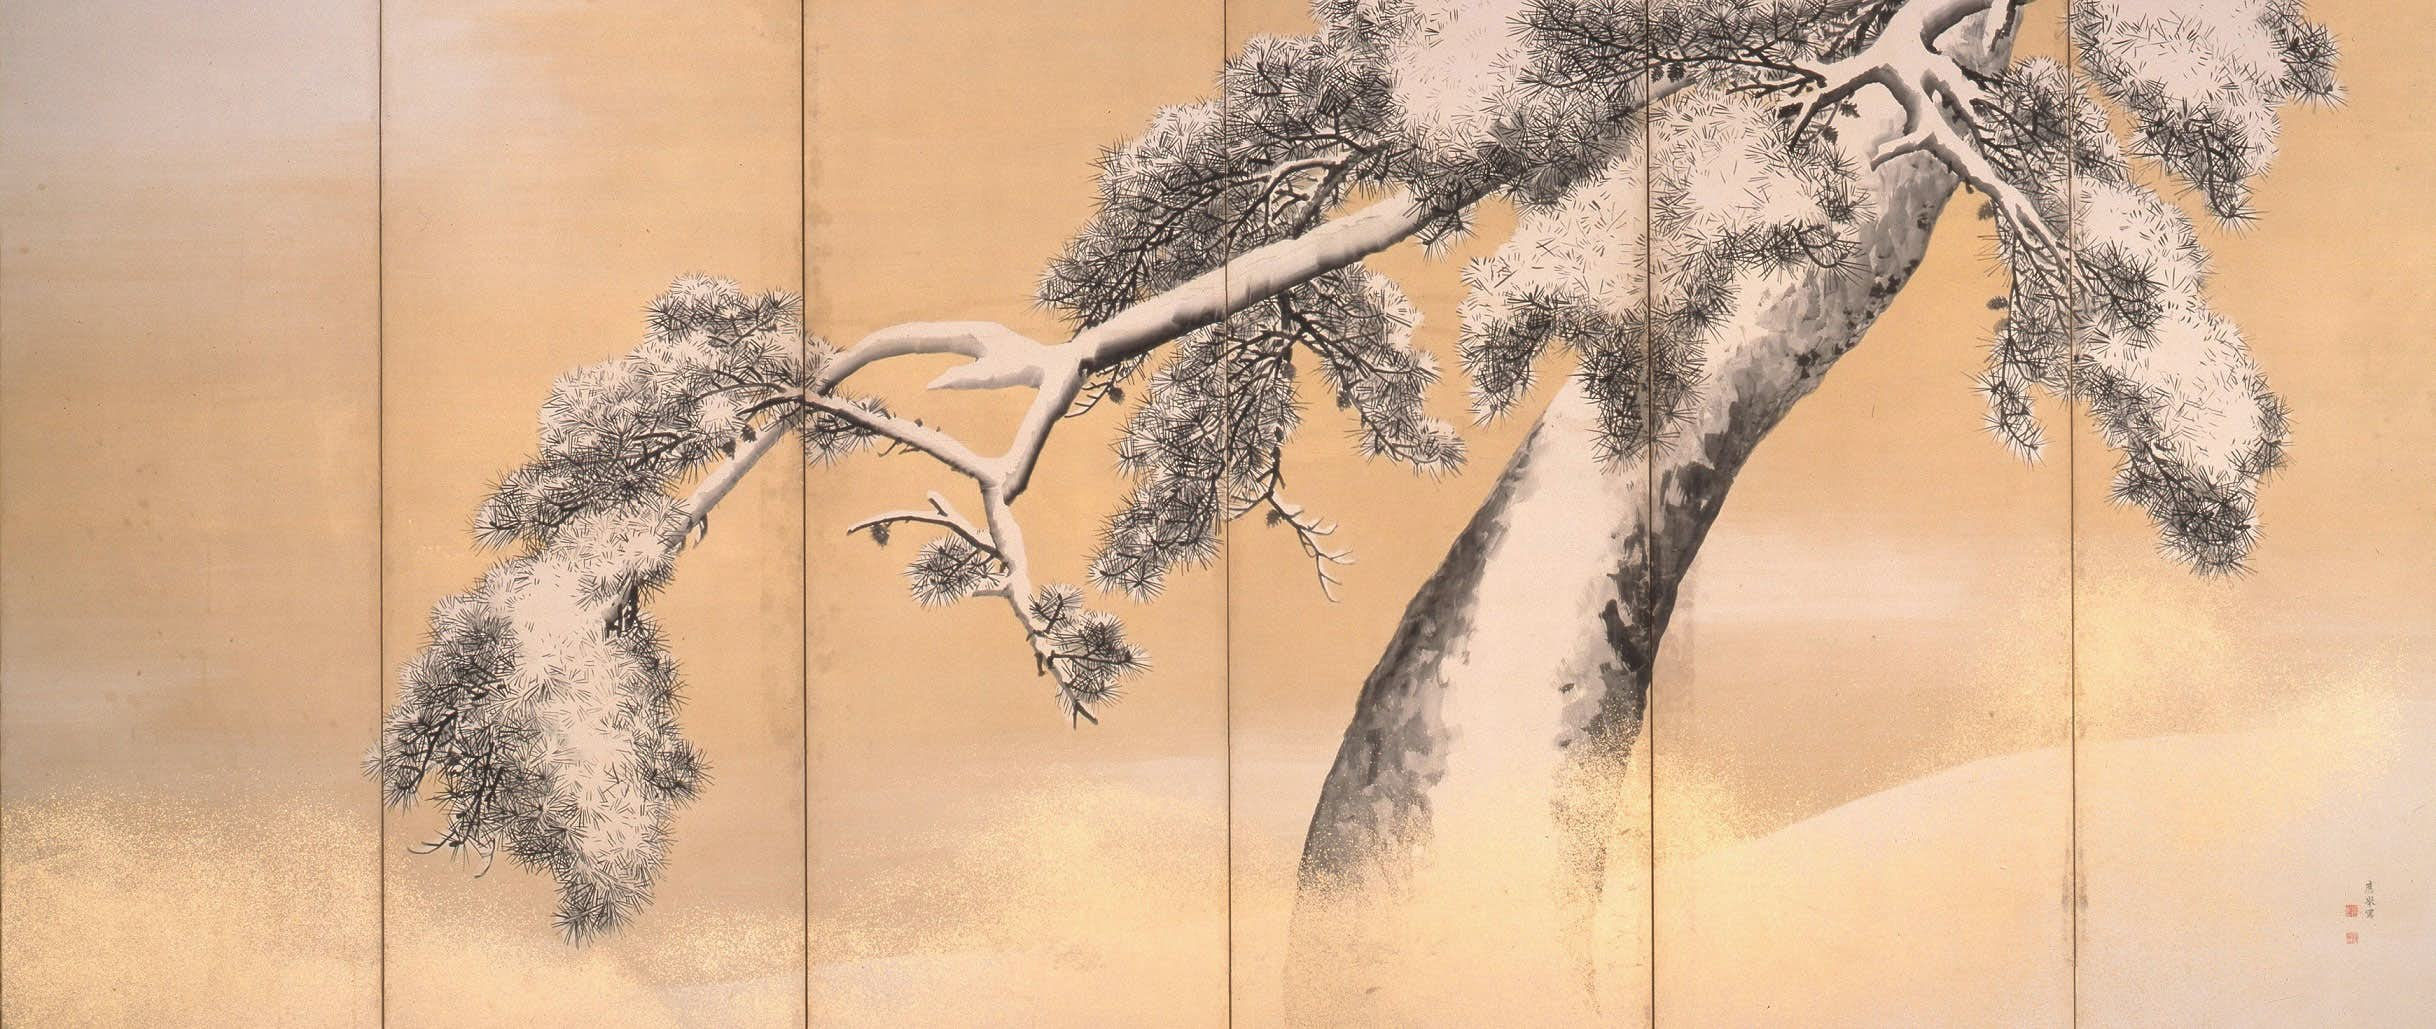 Trees, Traditional and Artworks on Pinterest